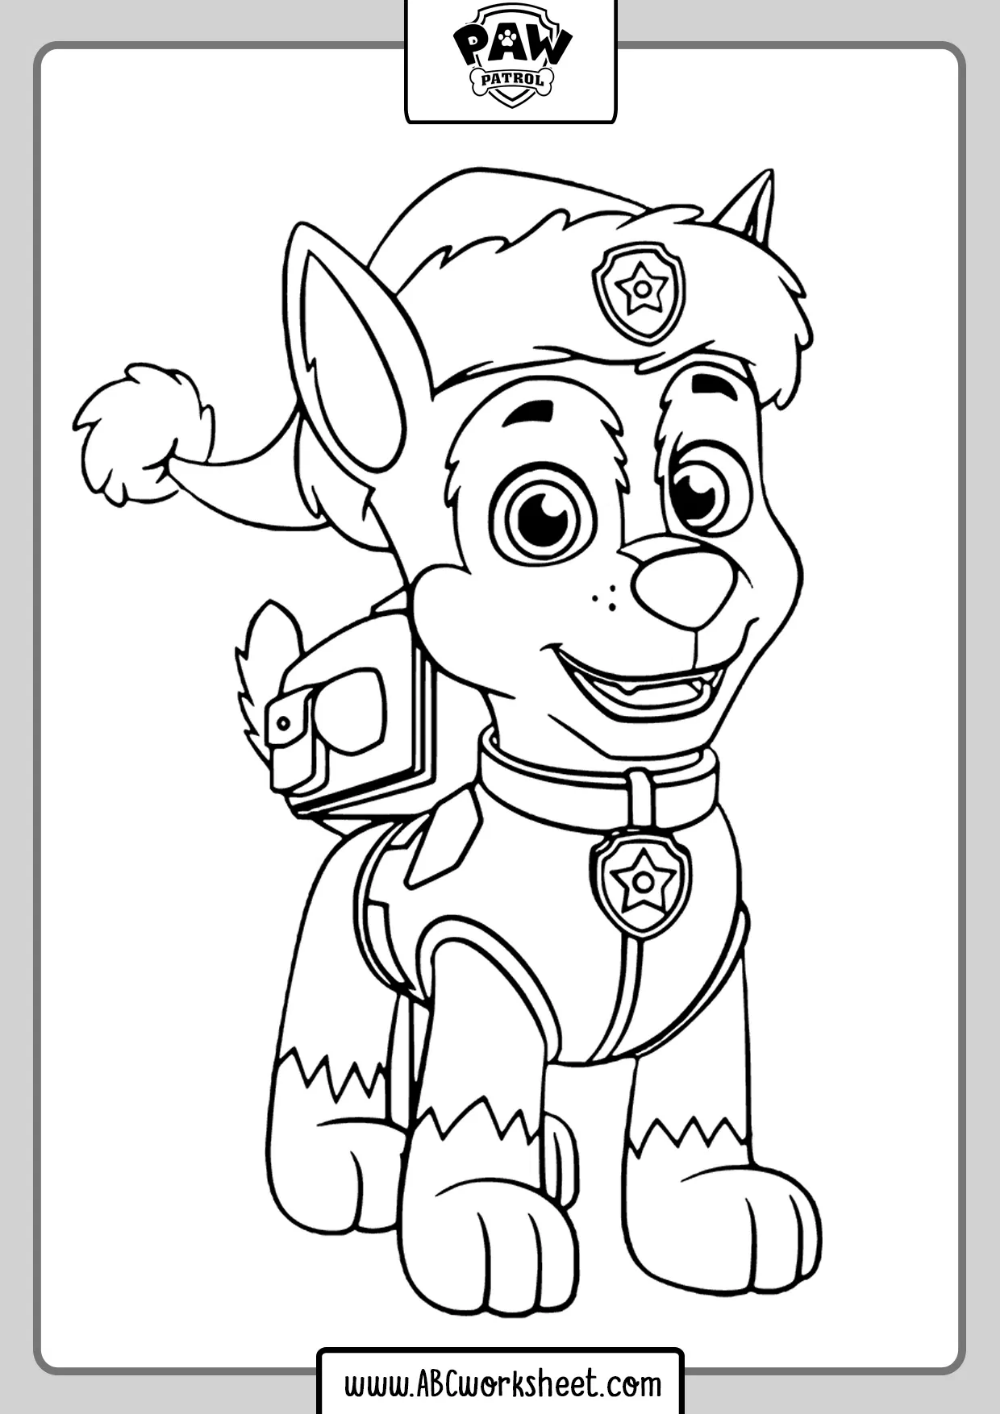 Marshall Paw Patrol Drawings fot coloring in 2020 | Paw ...